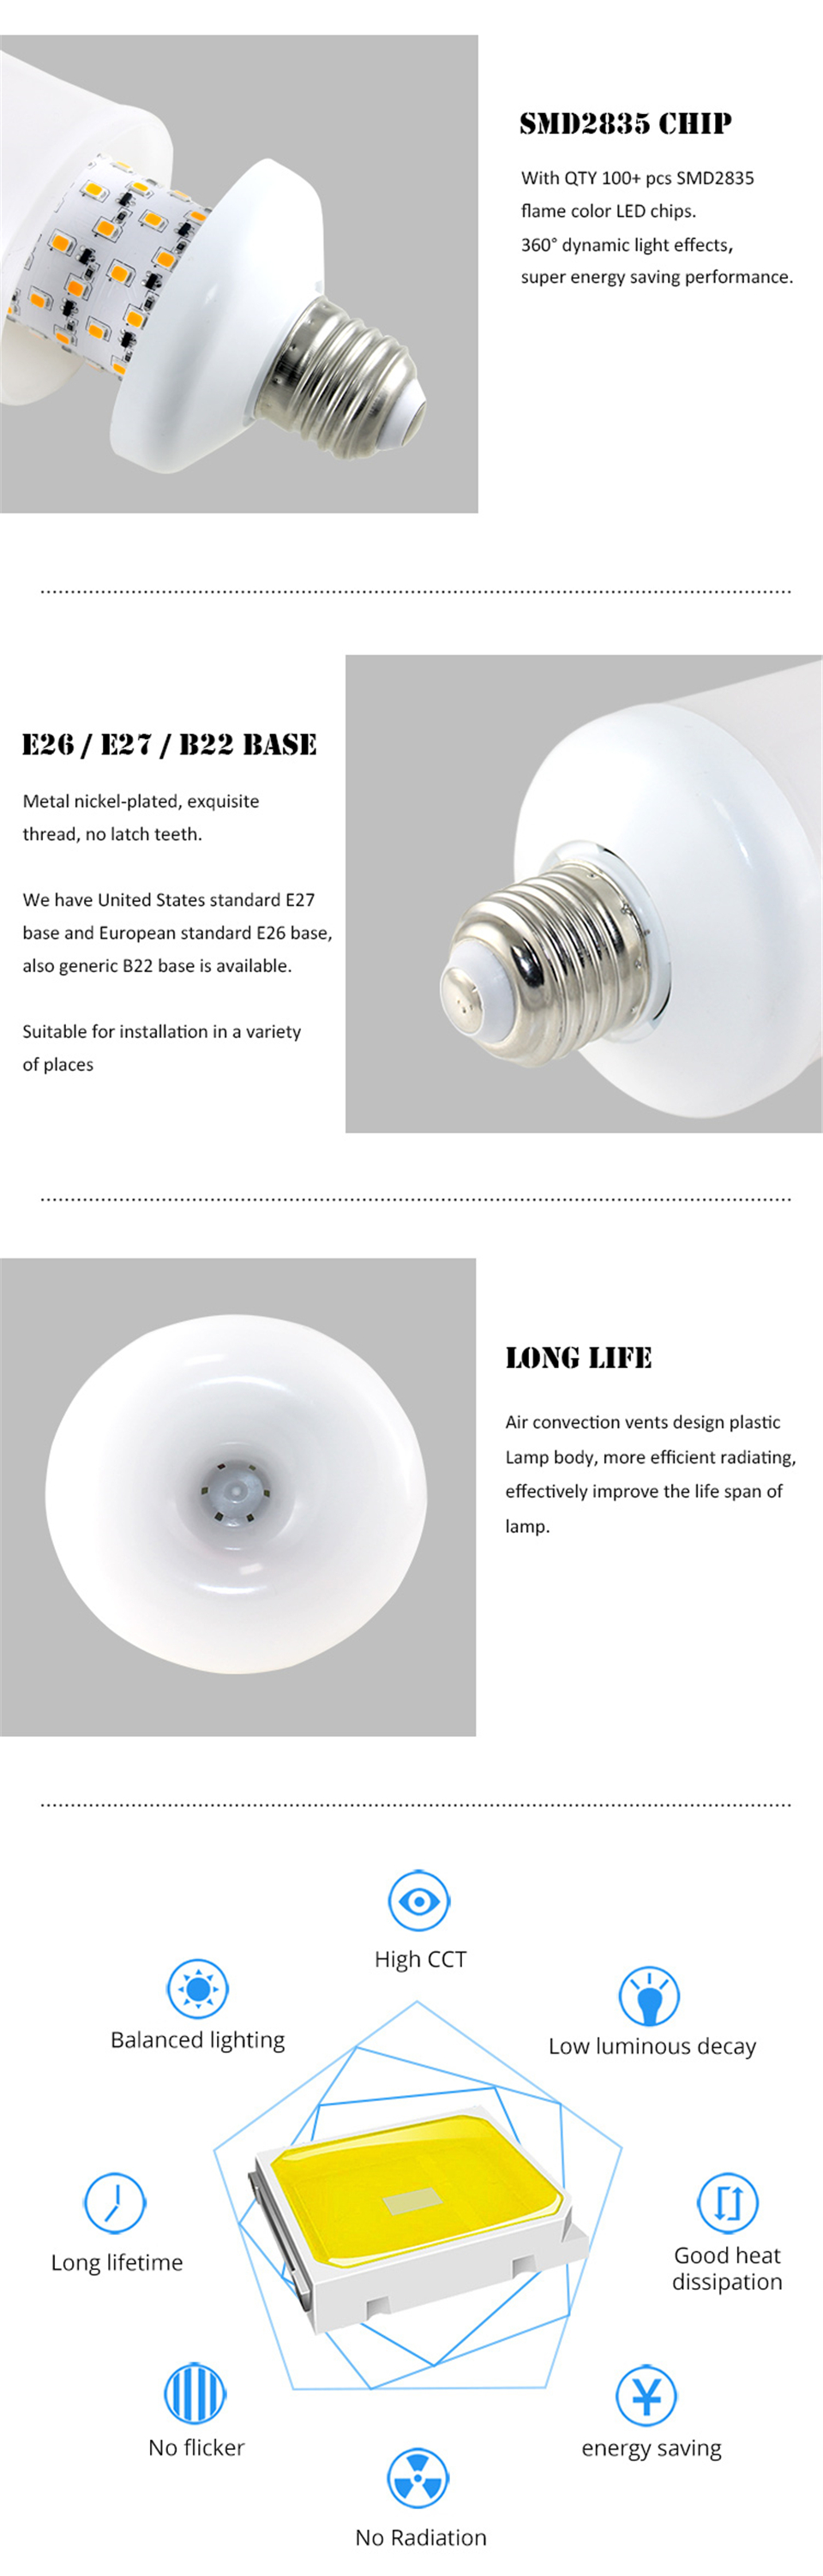 H0b1a830a62554abc8943c86e832de474p - Flame Lamps 15W 85-265V 4 Modes Ampoule LED Flame Effect Light Bulb Flickering Emulation Fire Light Yellow/Blue Flame